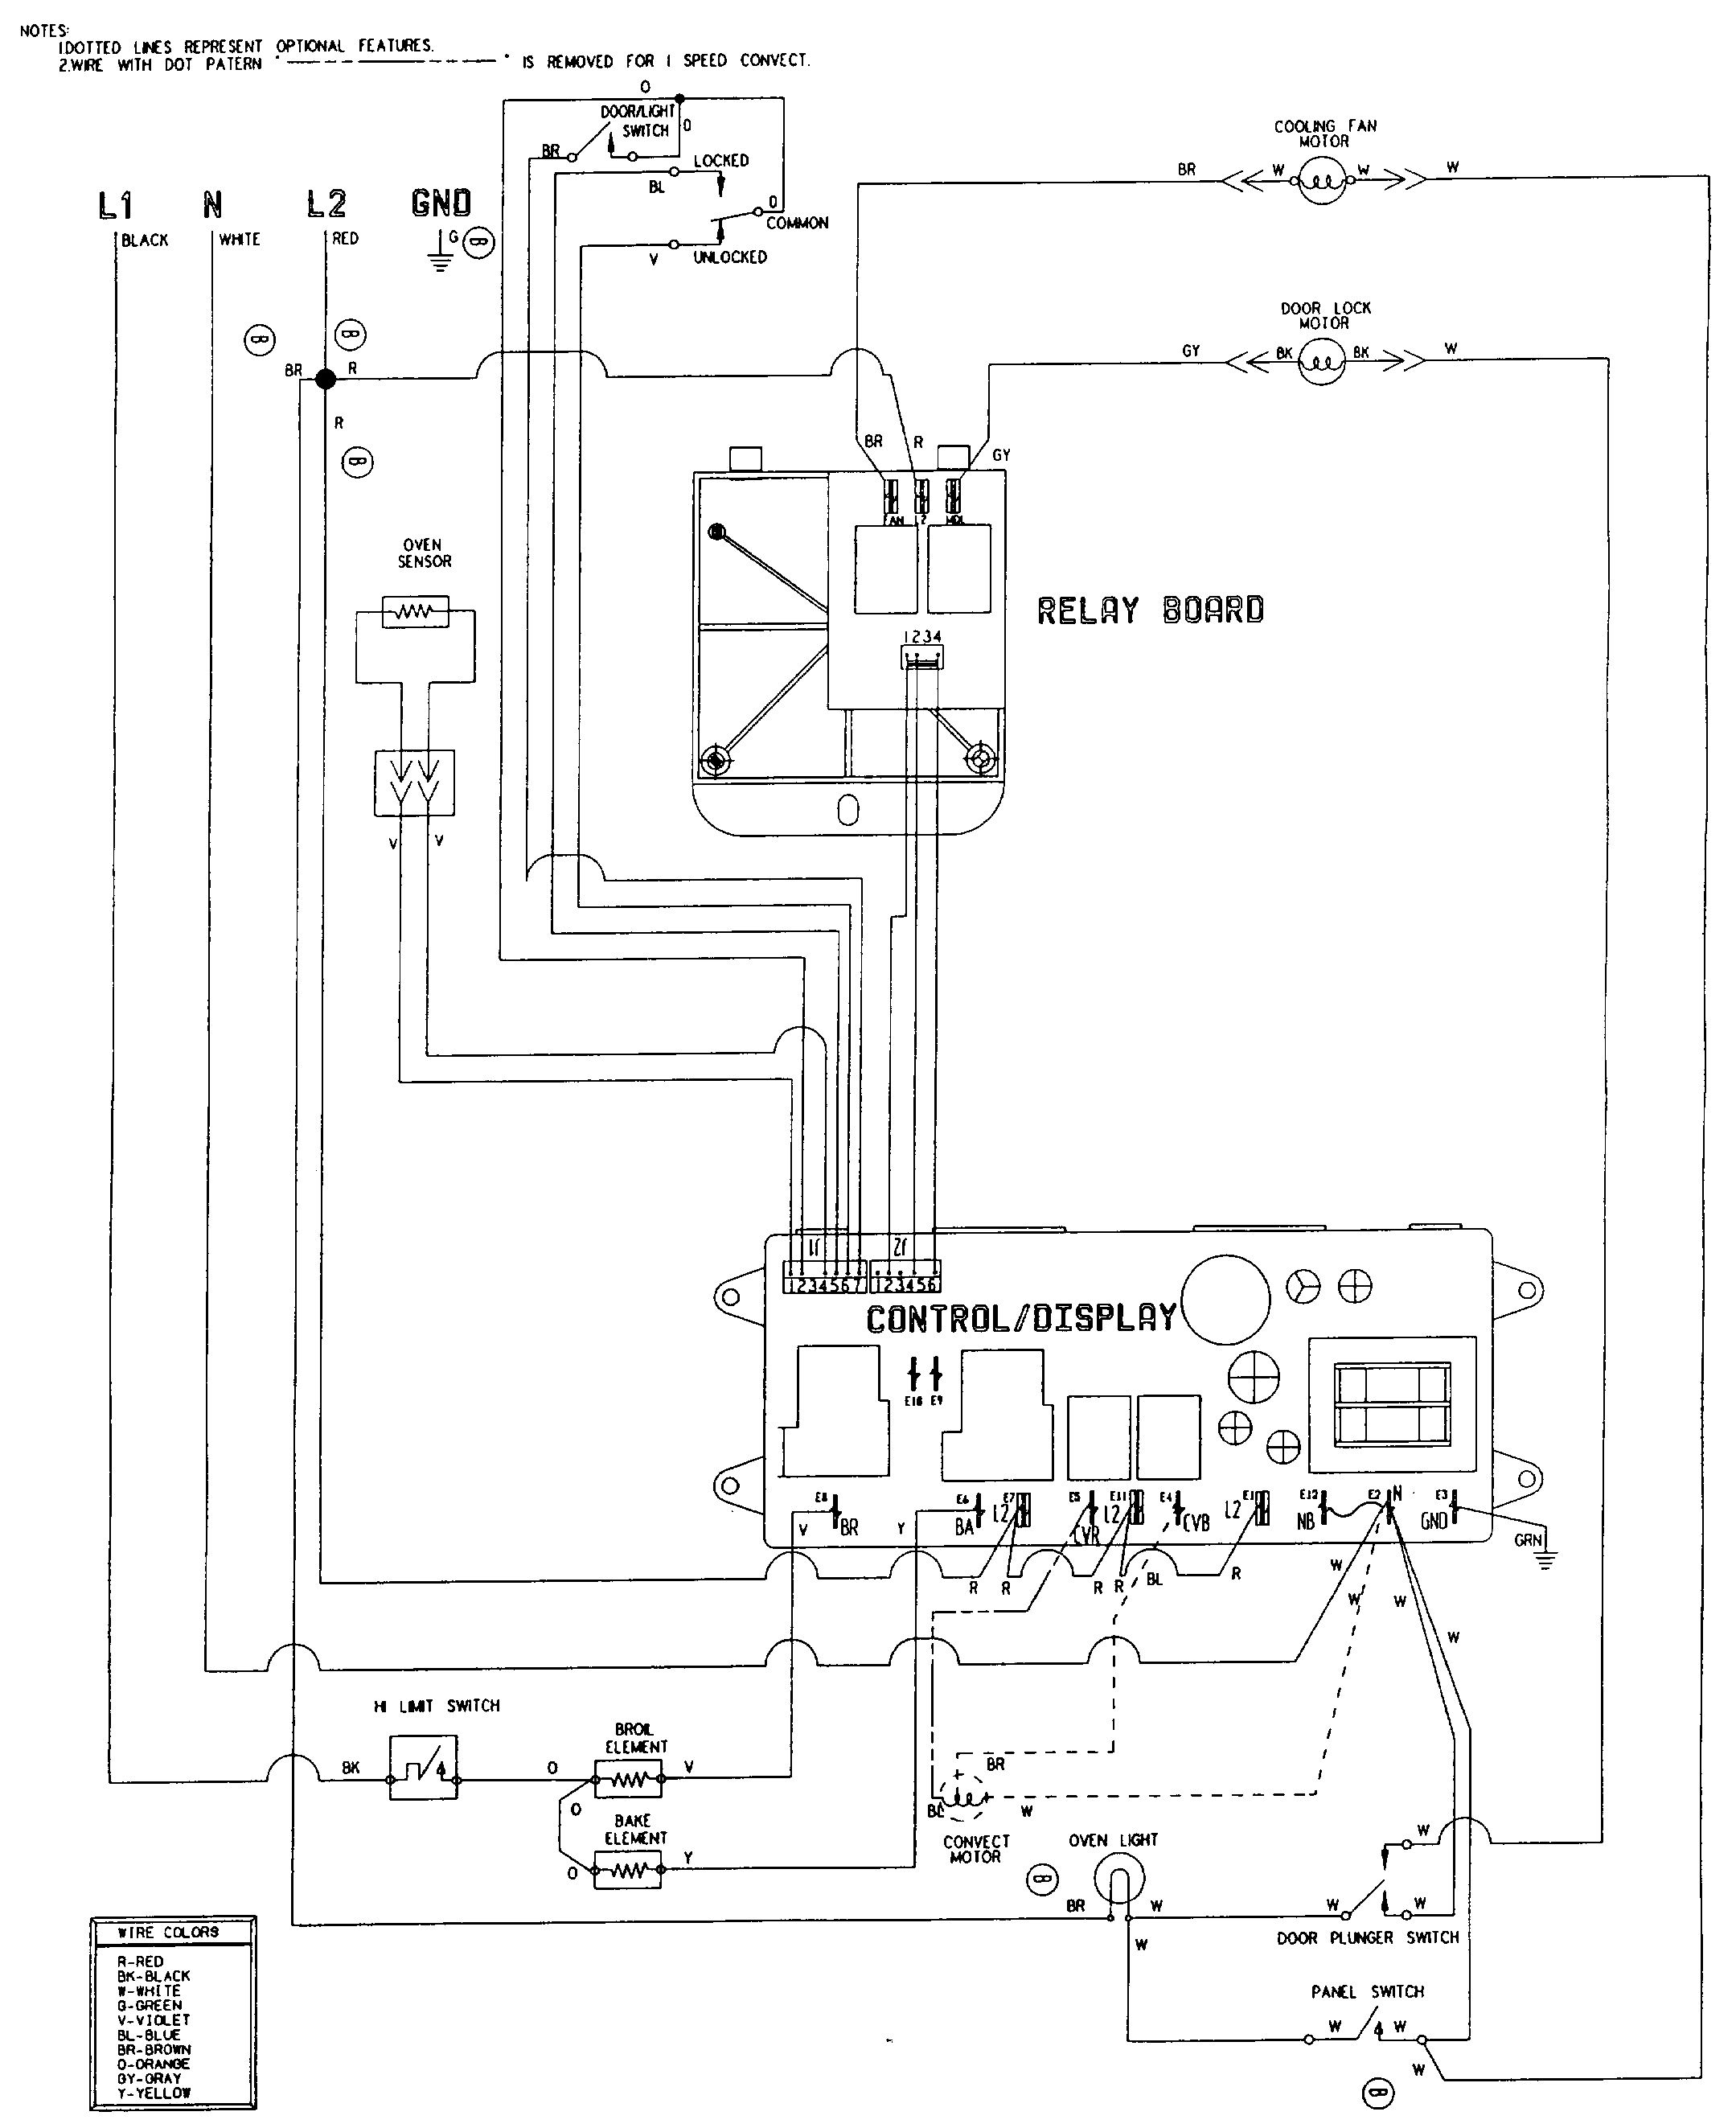 wall oven wiring diagram wiring diagram 110-Volt Electrical Plug Wiring electric double oven wiring diagram wiring diagram metawall oven wiring diagram online wiring diagram window ac